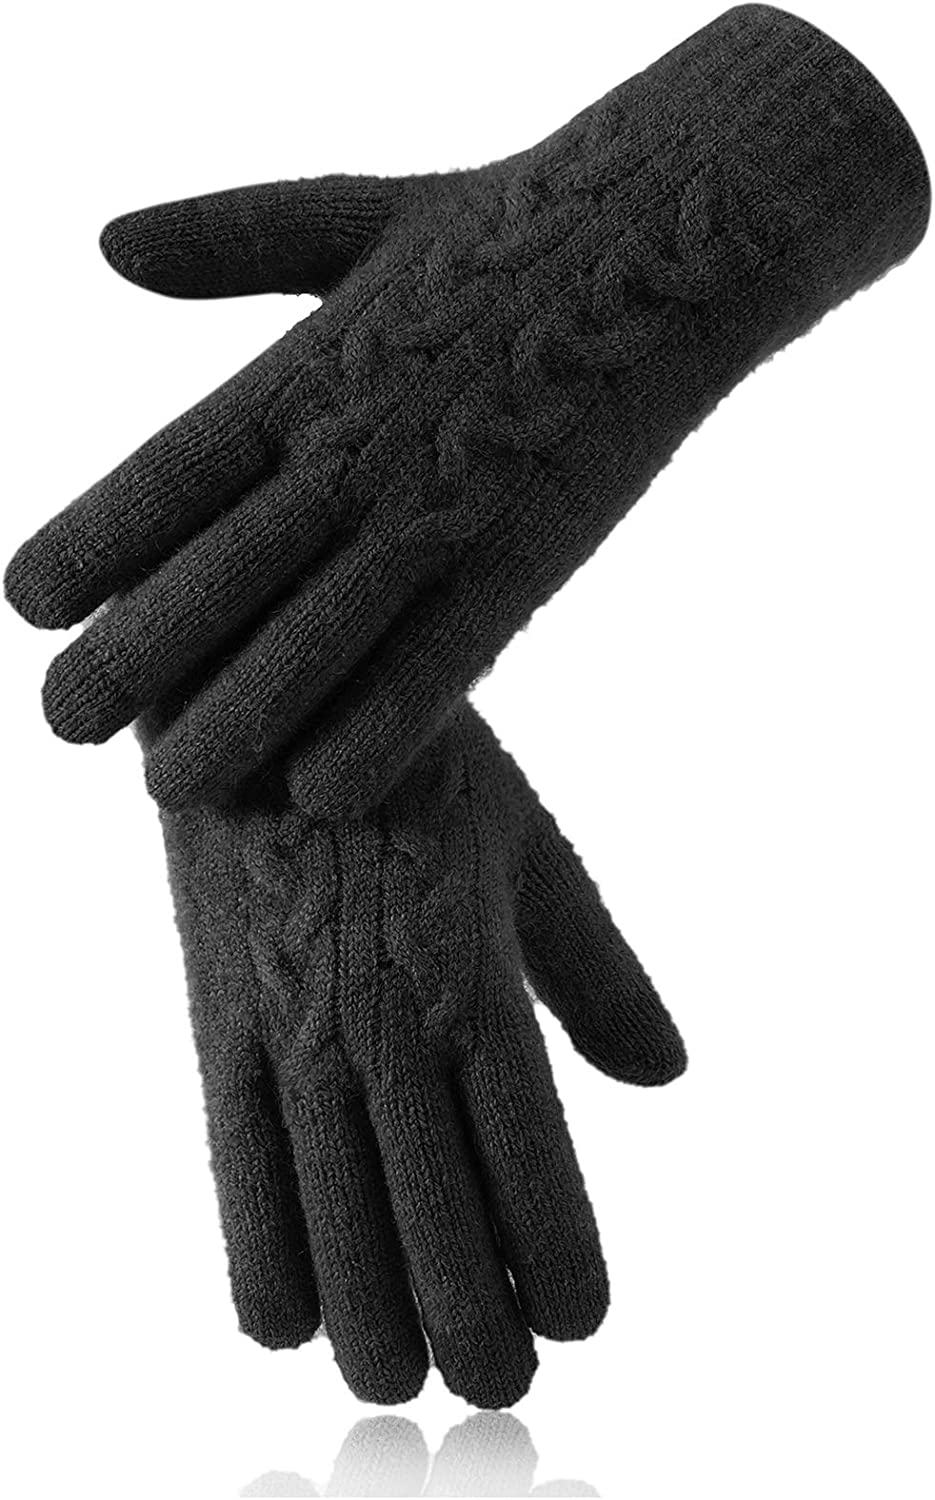 Reach Star Winter Gloves for Women, 3-Finger Touch Screen Dual-Layer Cashmere Lining Gloves